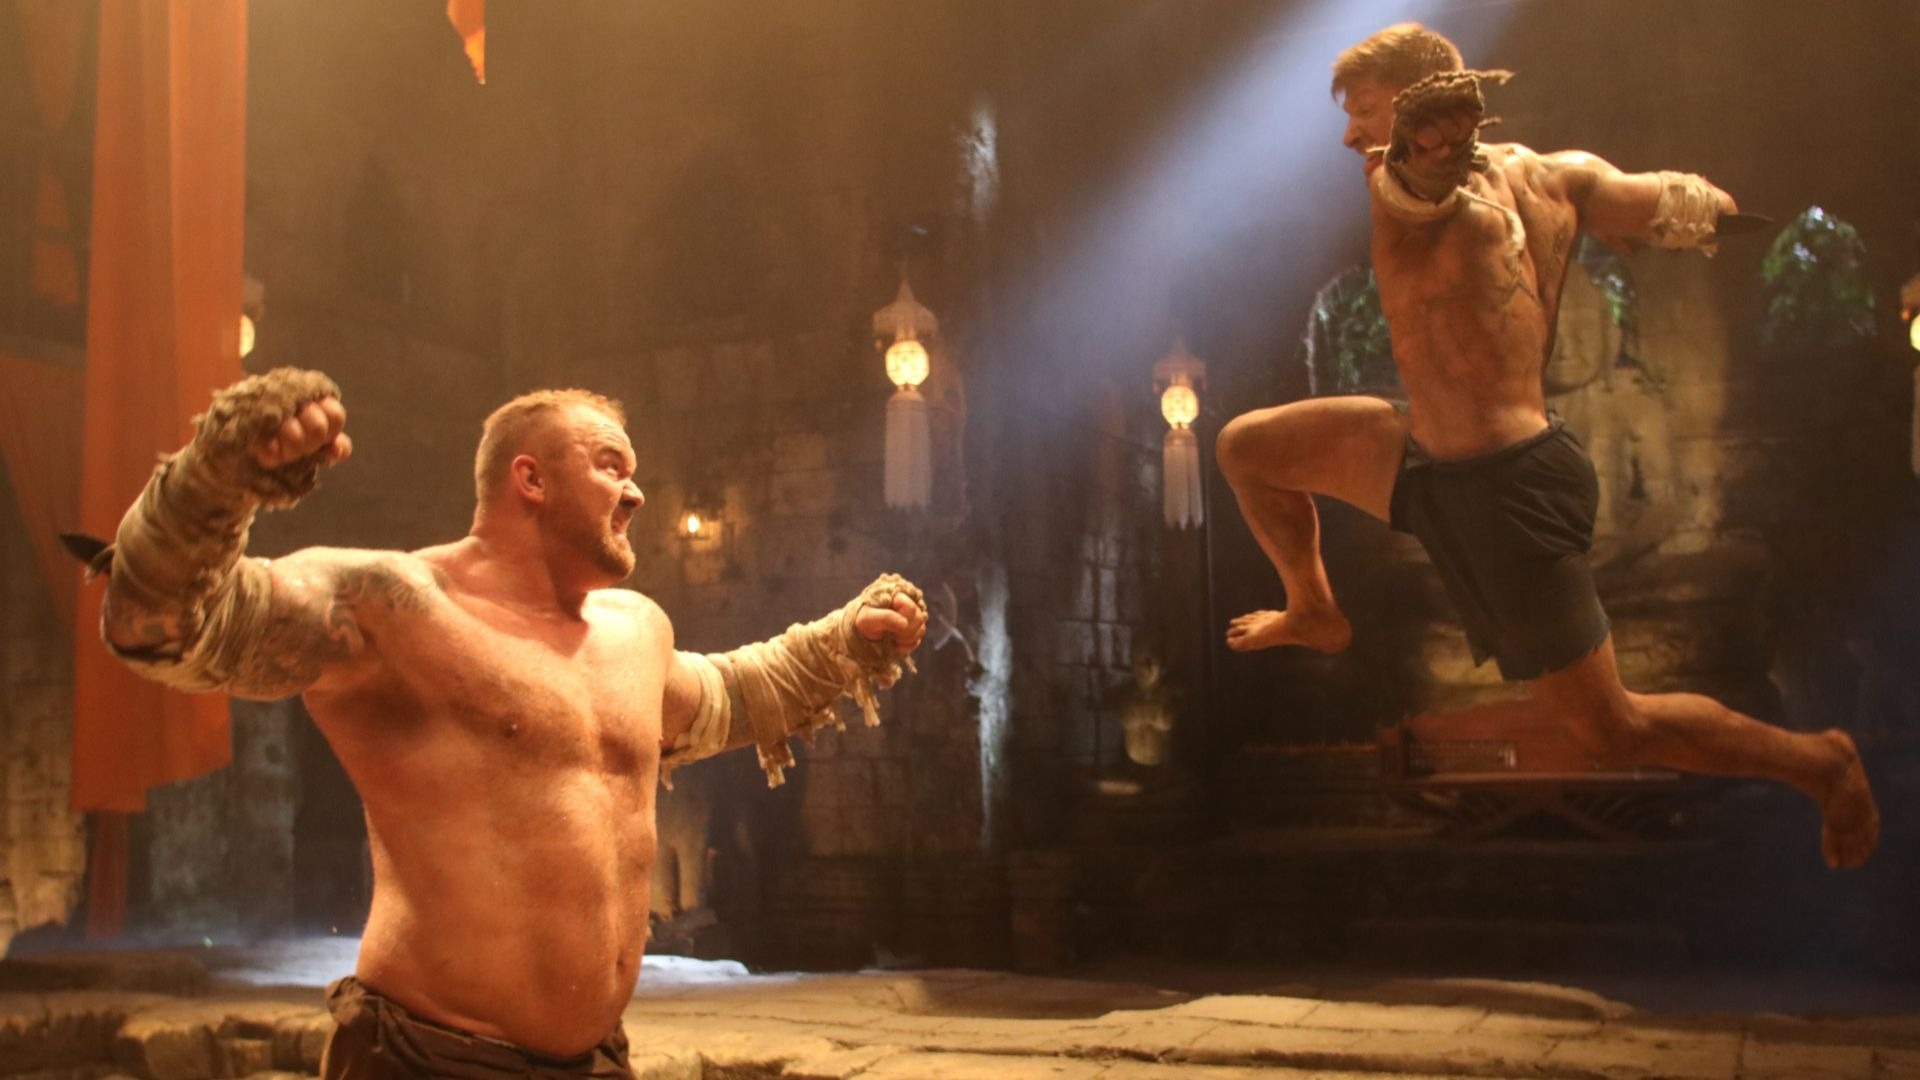 The Mountain in Kickboxer Retailiation.